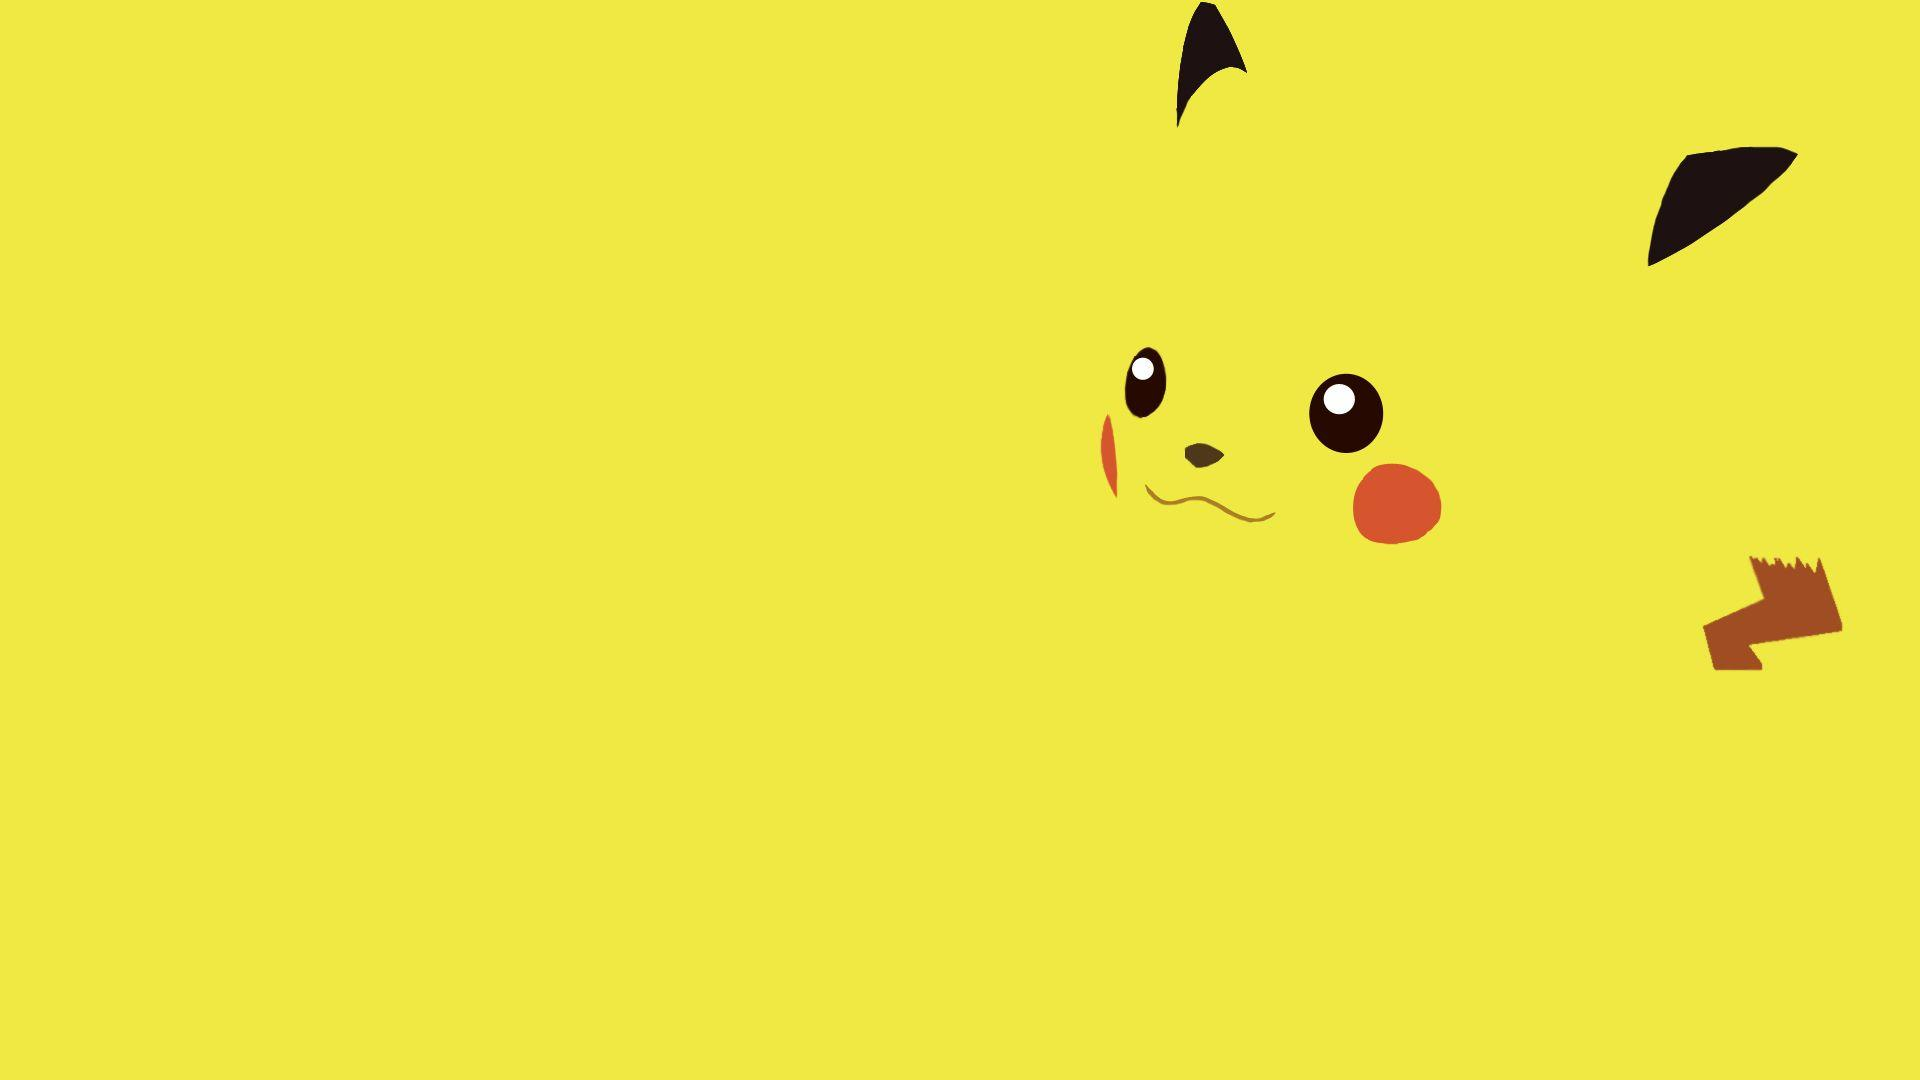 Simple Pikachu Wallpapers Android Wallpapers